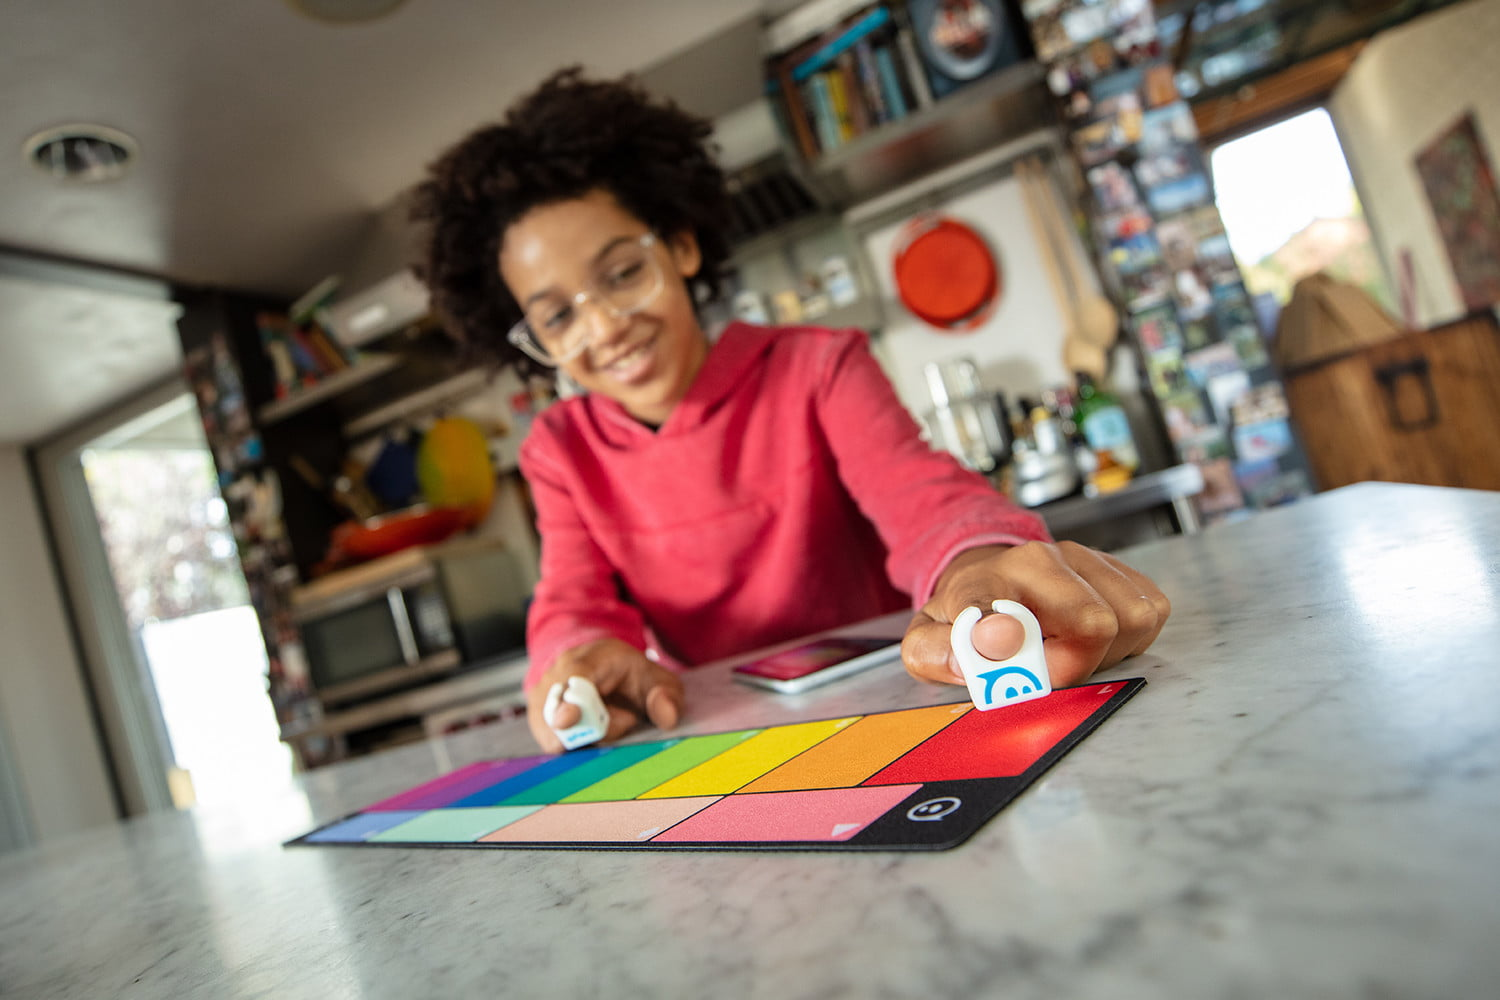 Sphero's Specdrums let you drum up a symphony of sound with colors